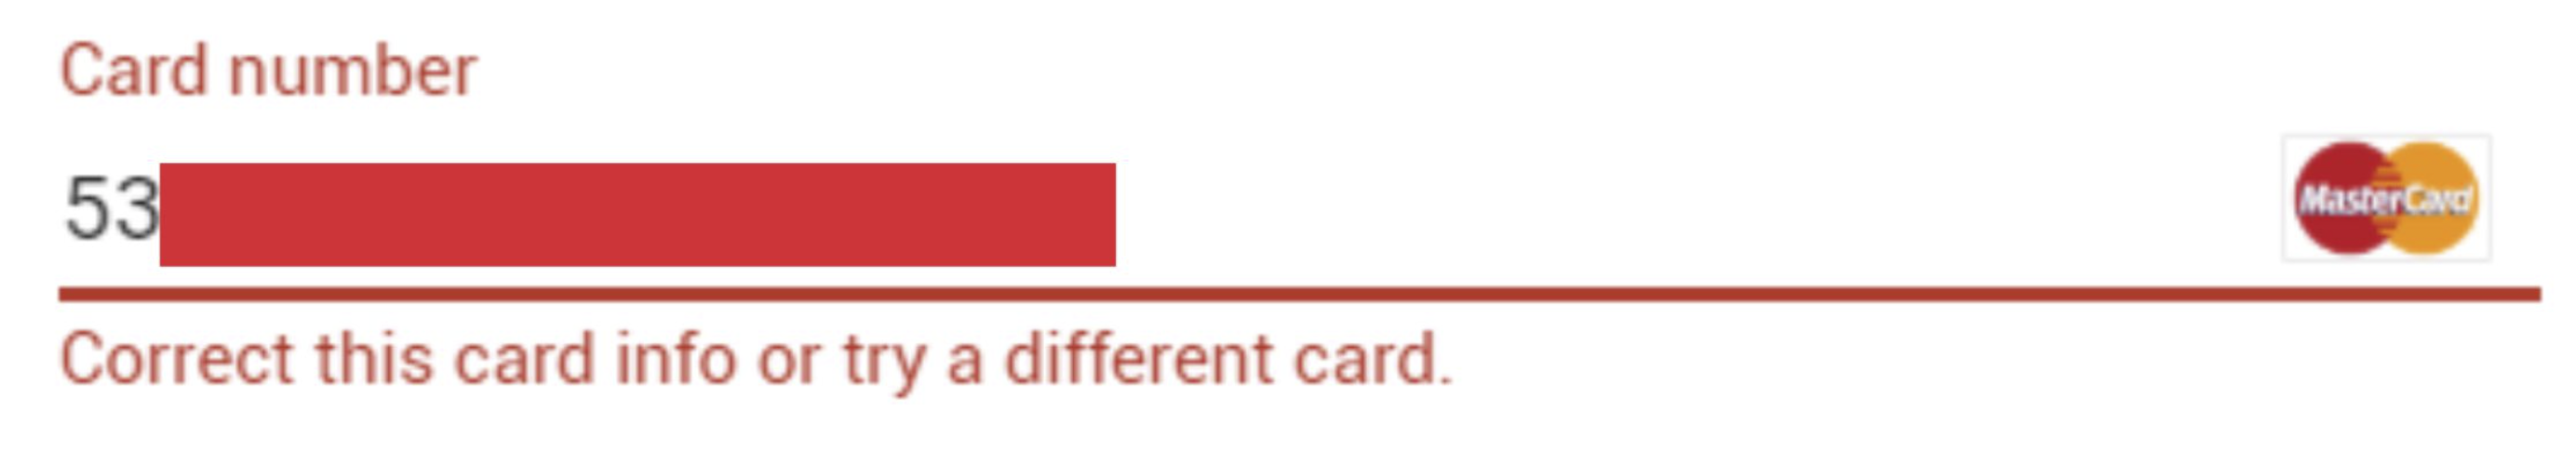 "Solved: How do I fix Google Play Store Payment Error ""Correct this card info or try a different card"" for Debit Card?"